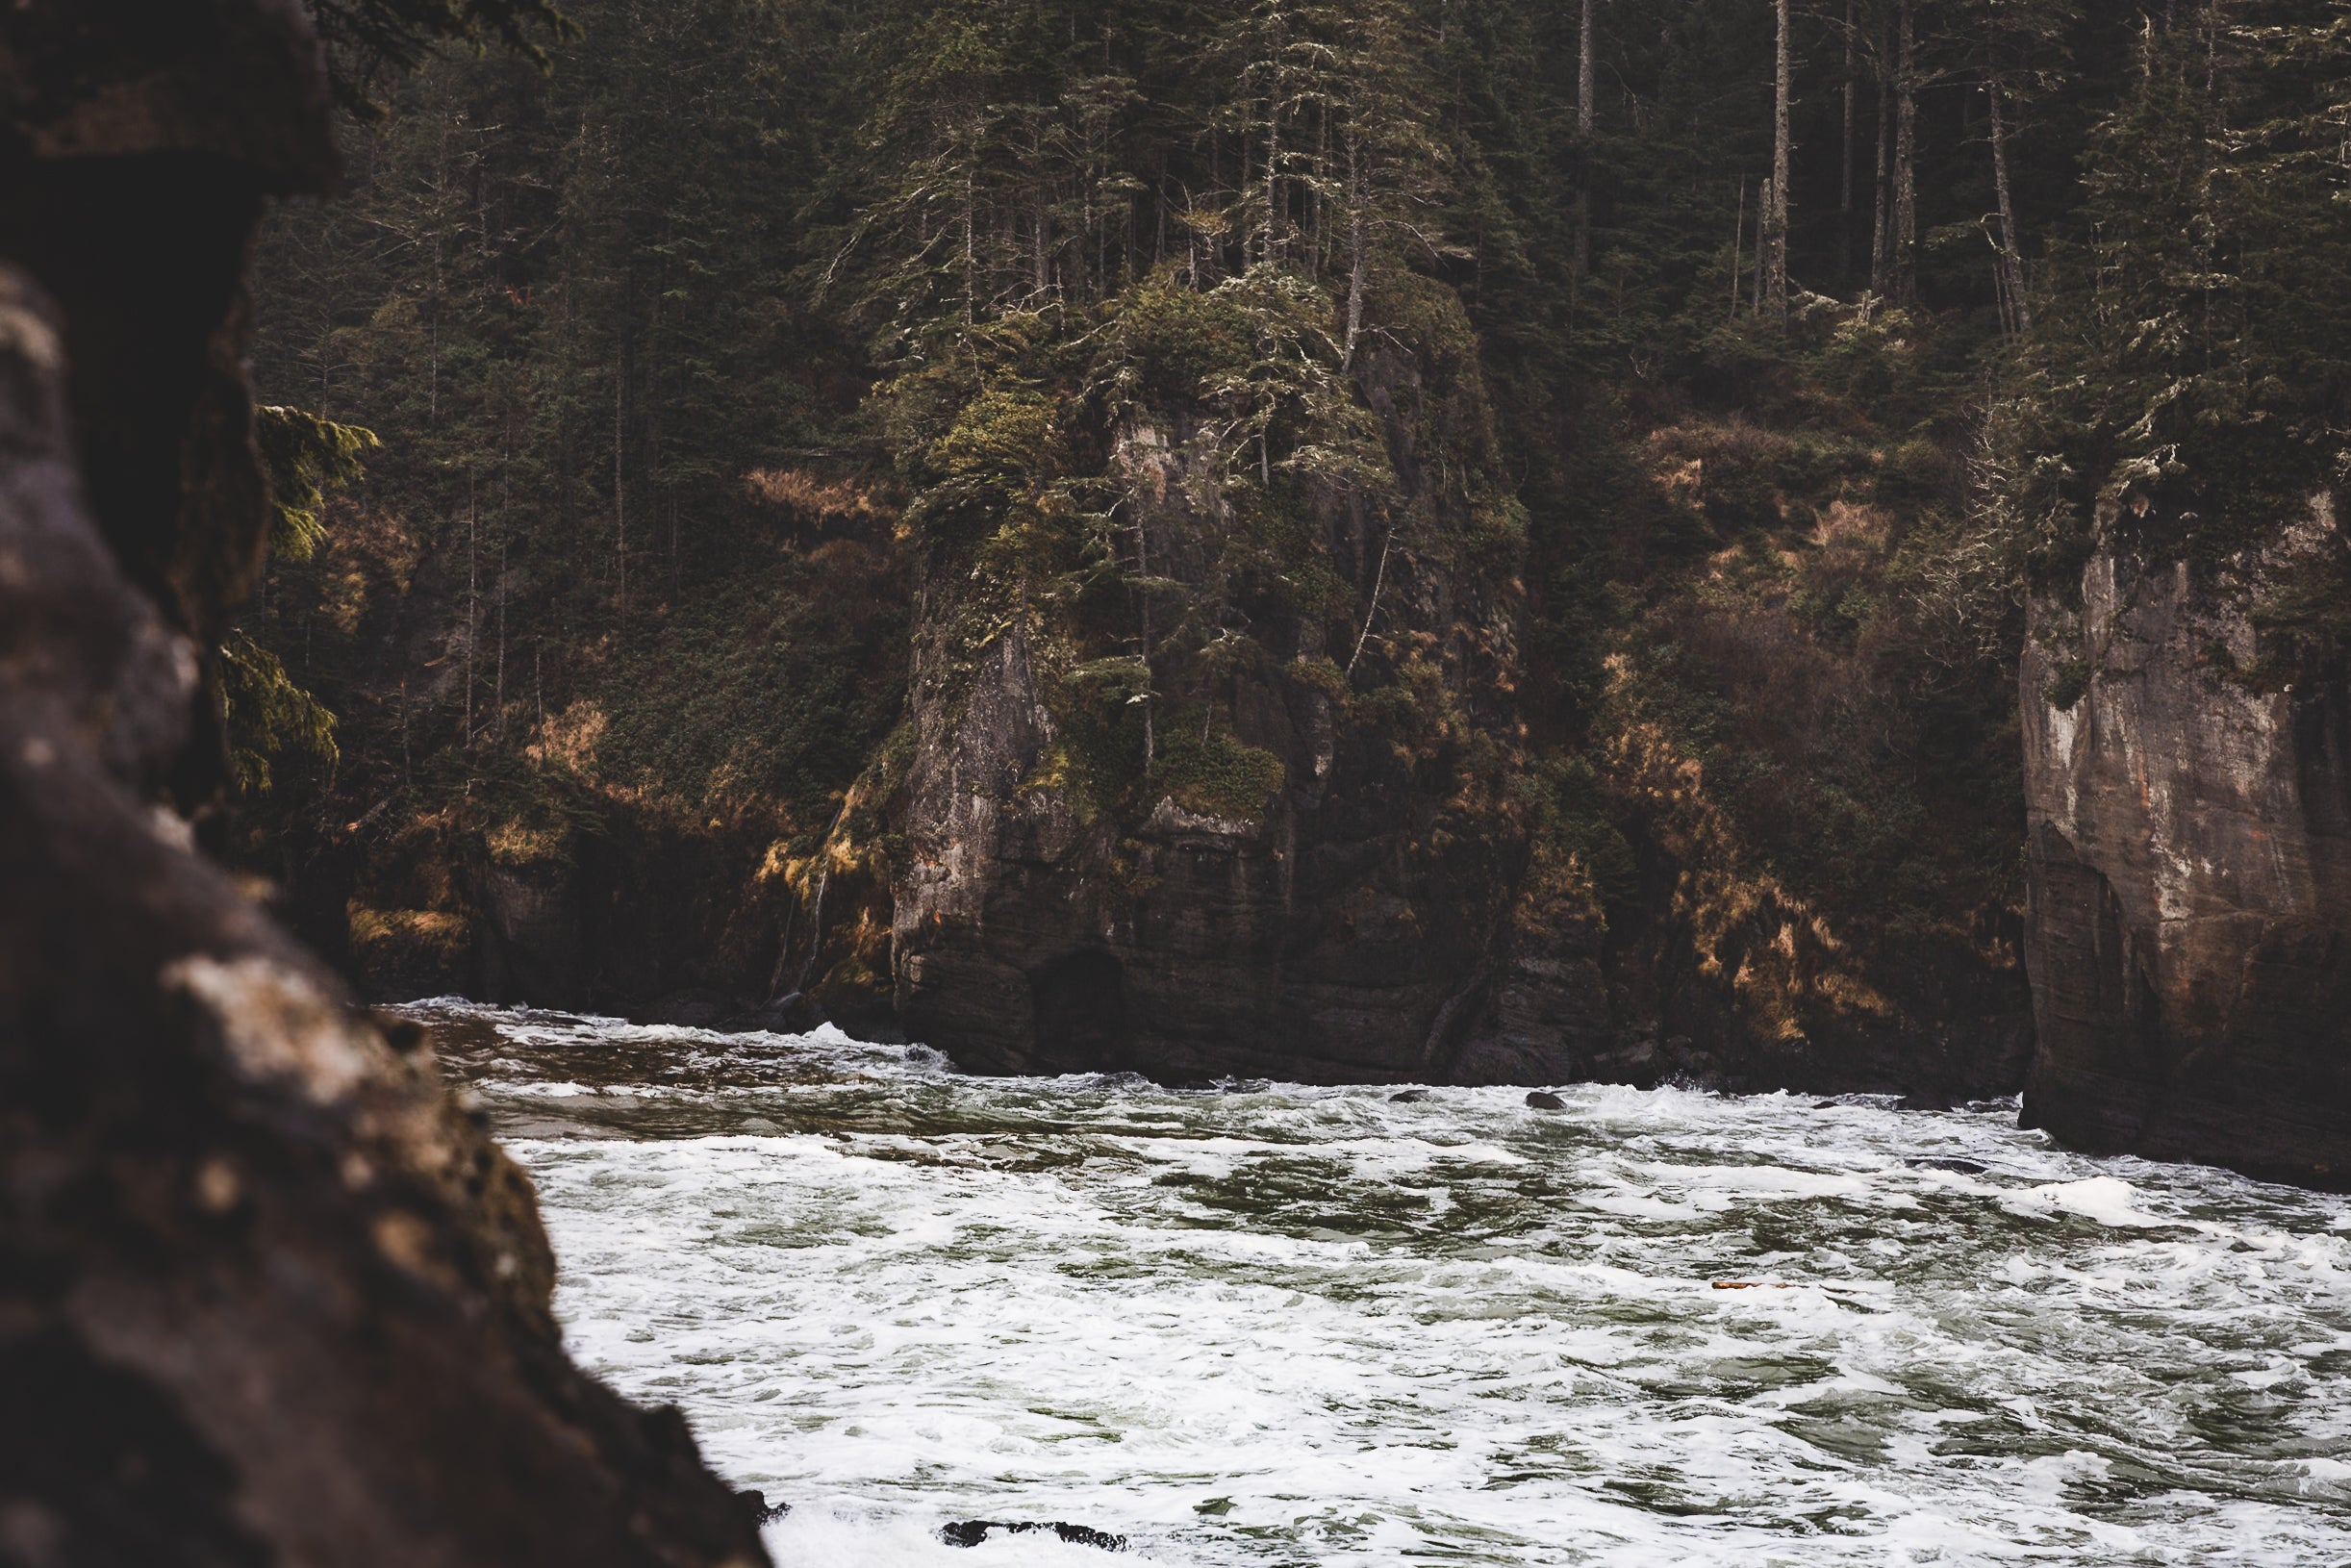 Story: Cape Flattery